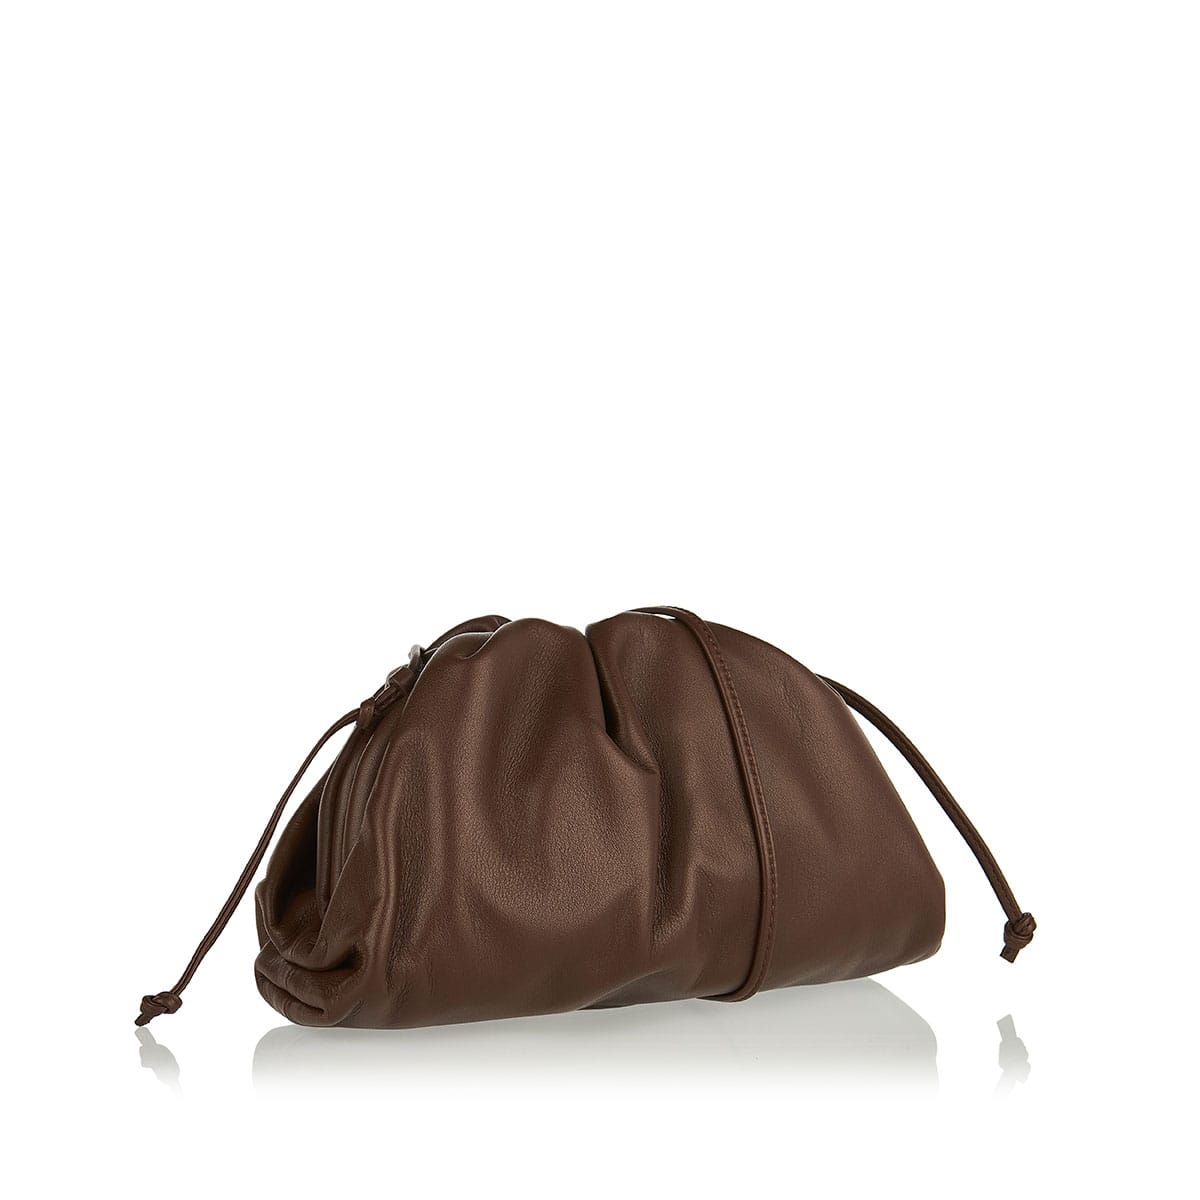 The Pouch mini leather clutch